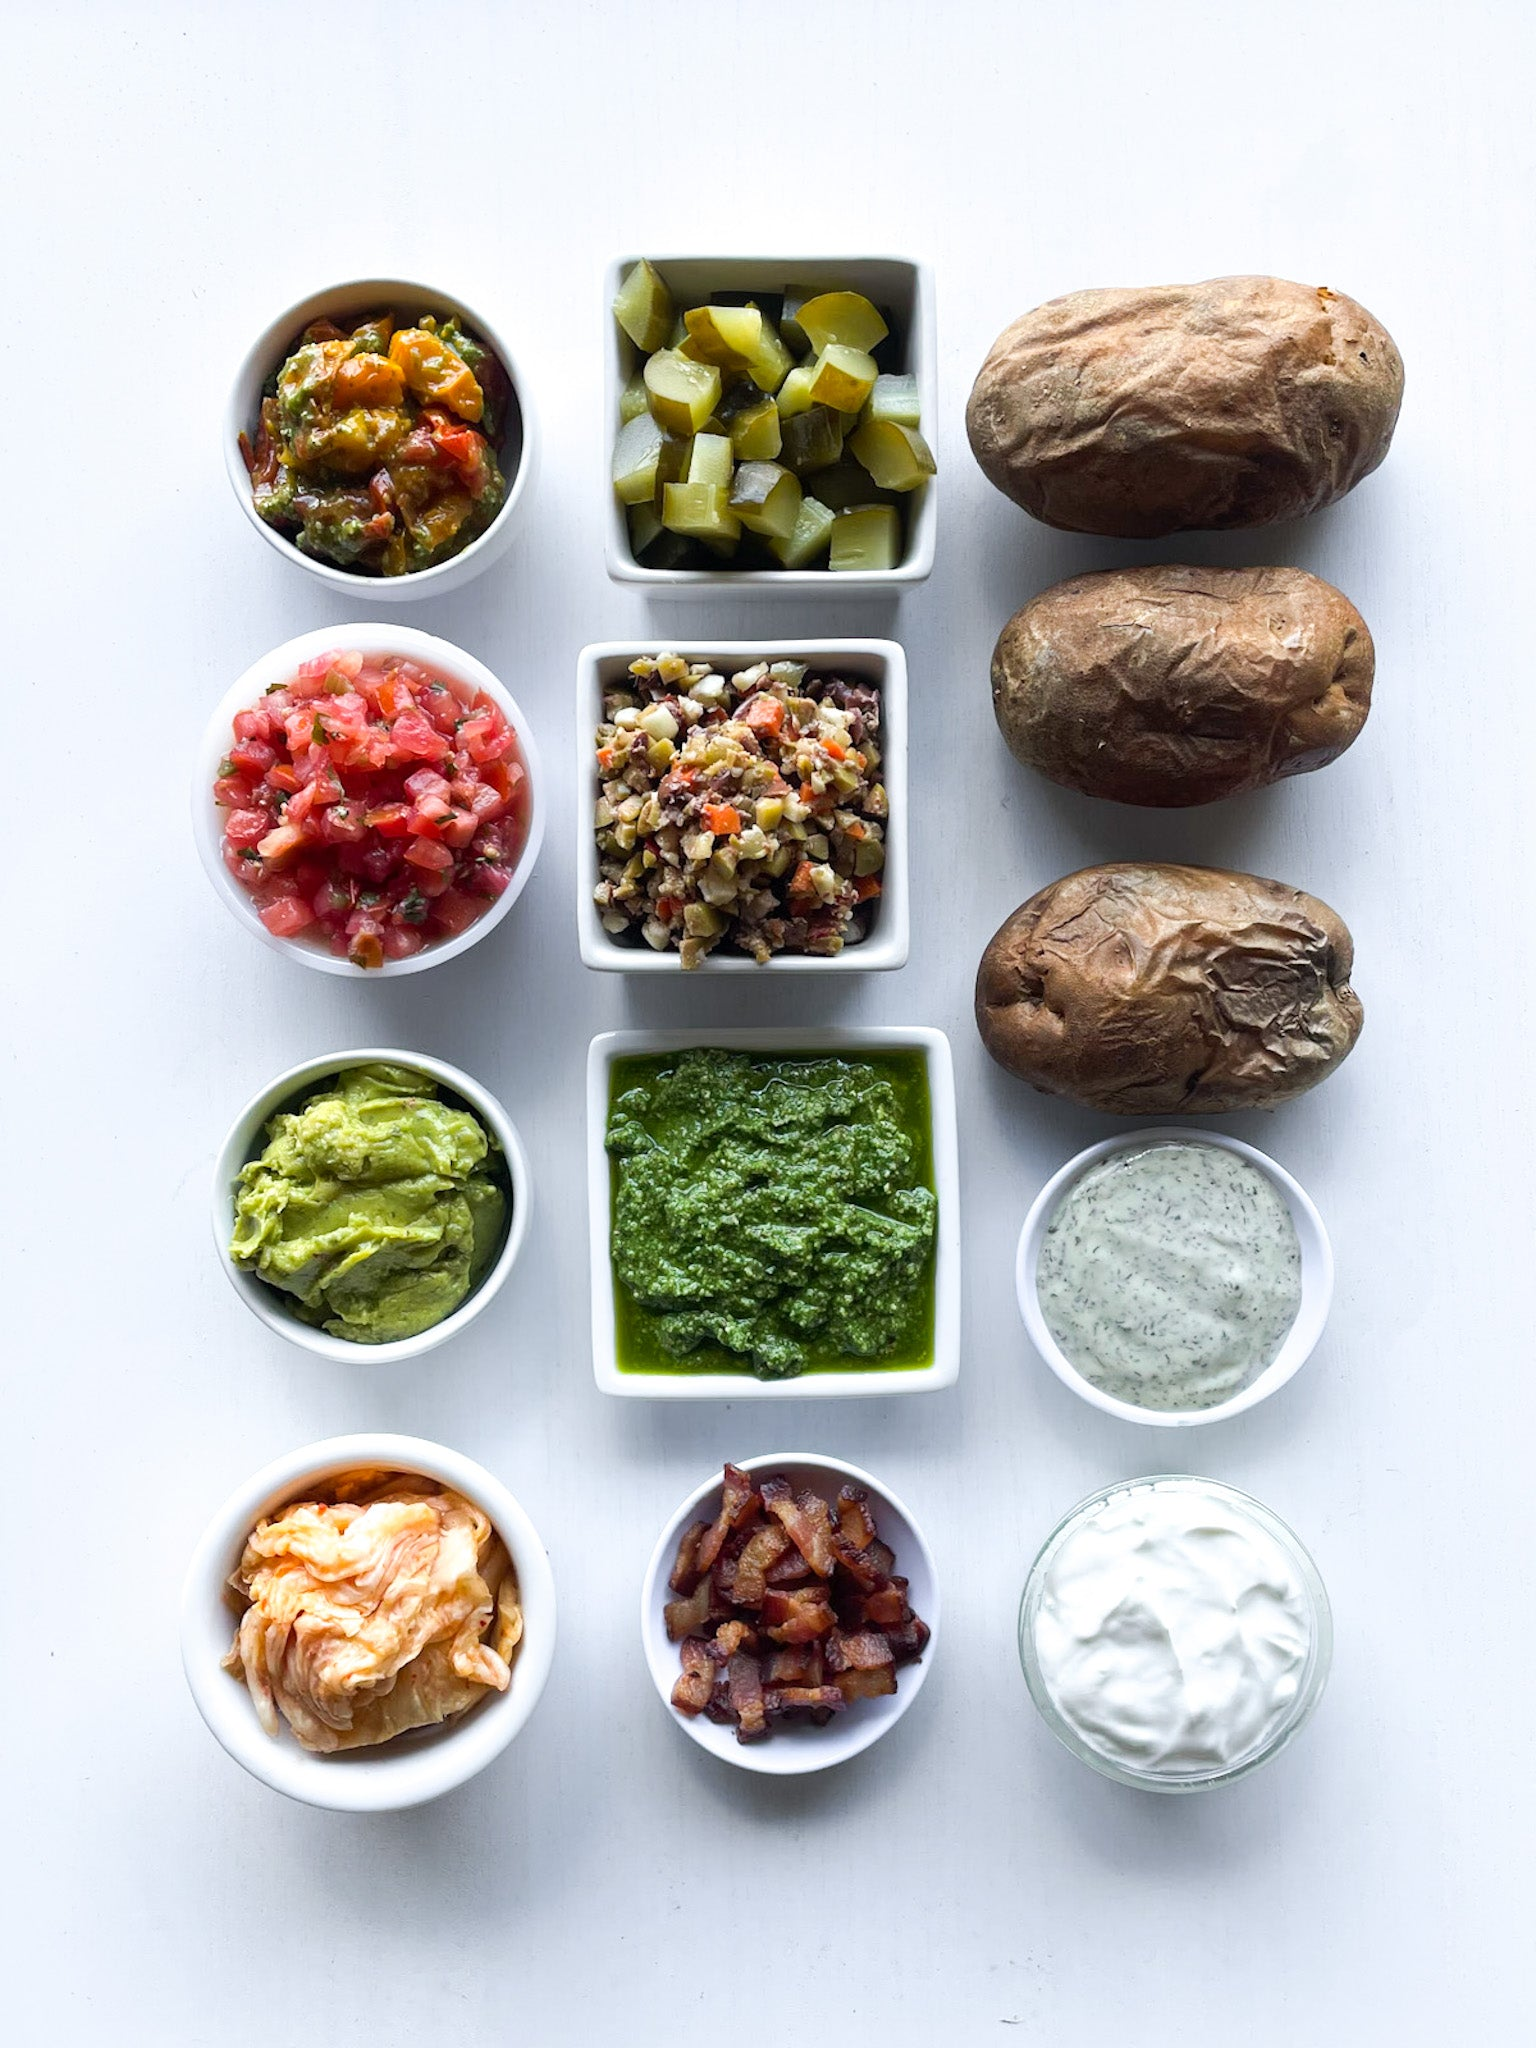 Baked Potato Bar with Healthy Toppings